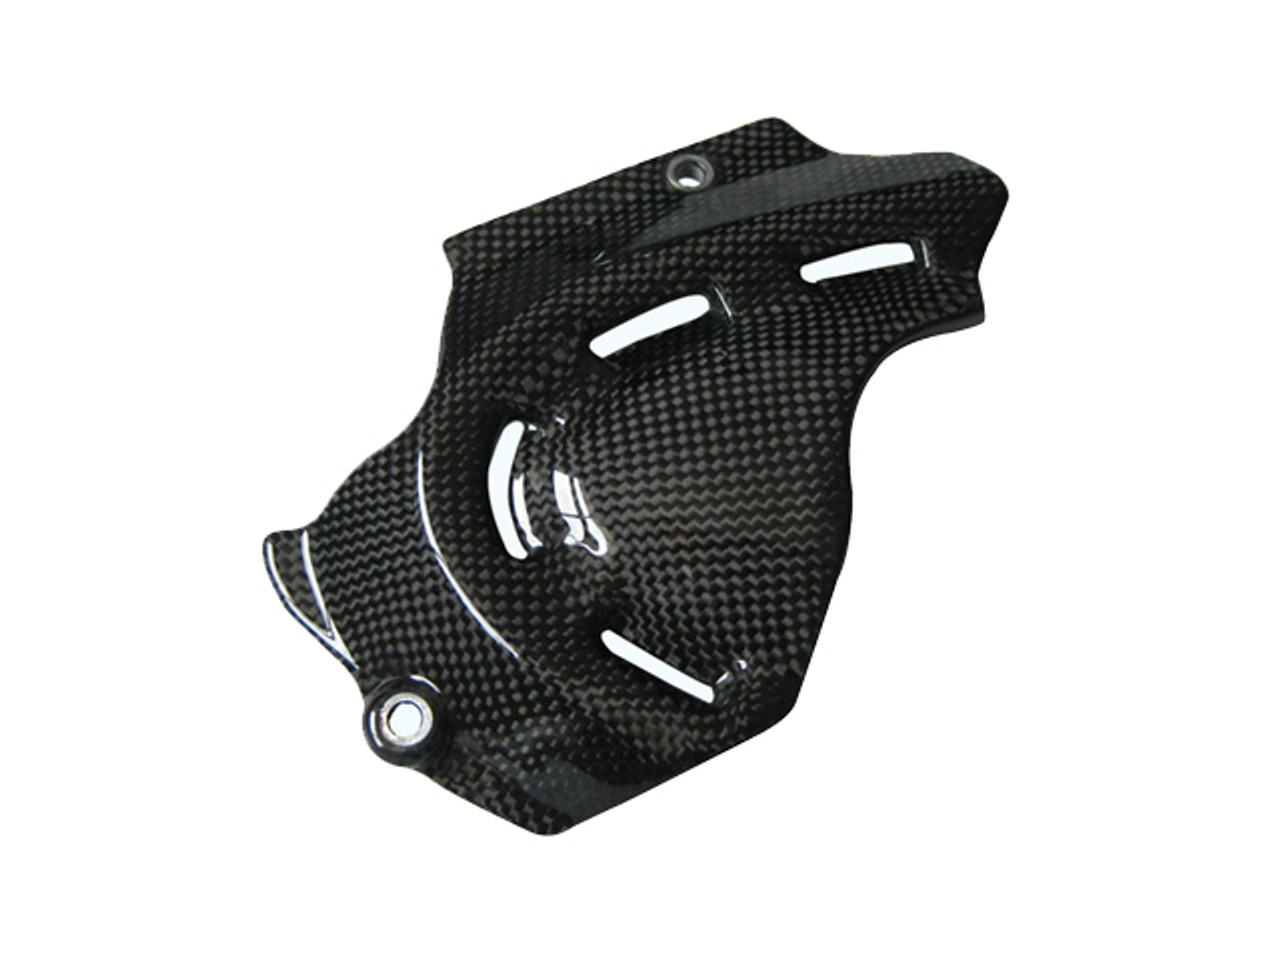 Glossy Plain Weave Carbon Fiber Sprocket Cover for Ducati Monster 696 / 796/ 1100, Streetfighter